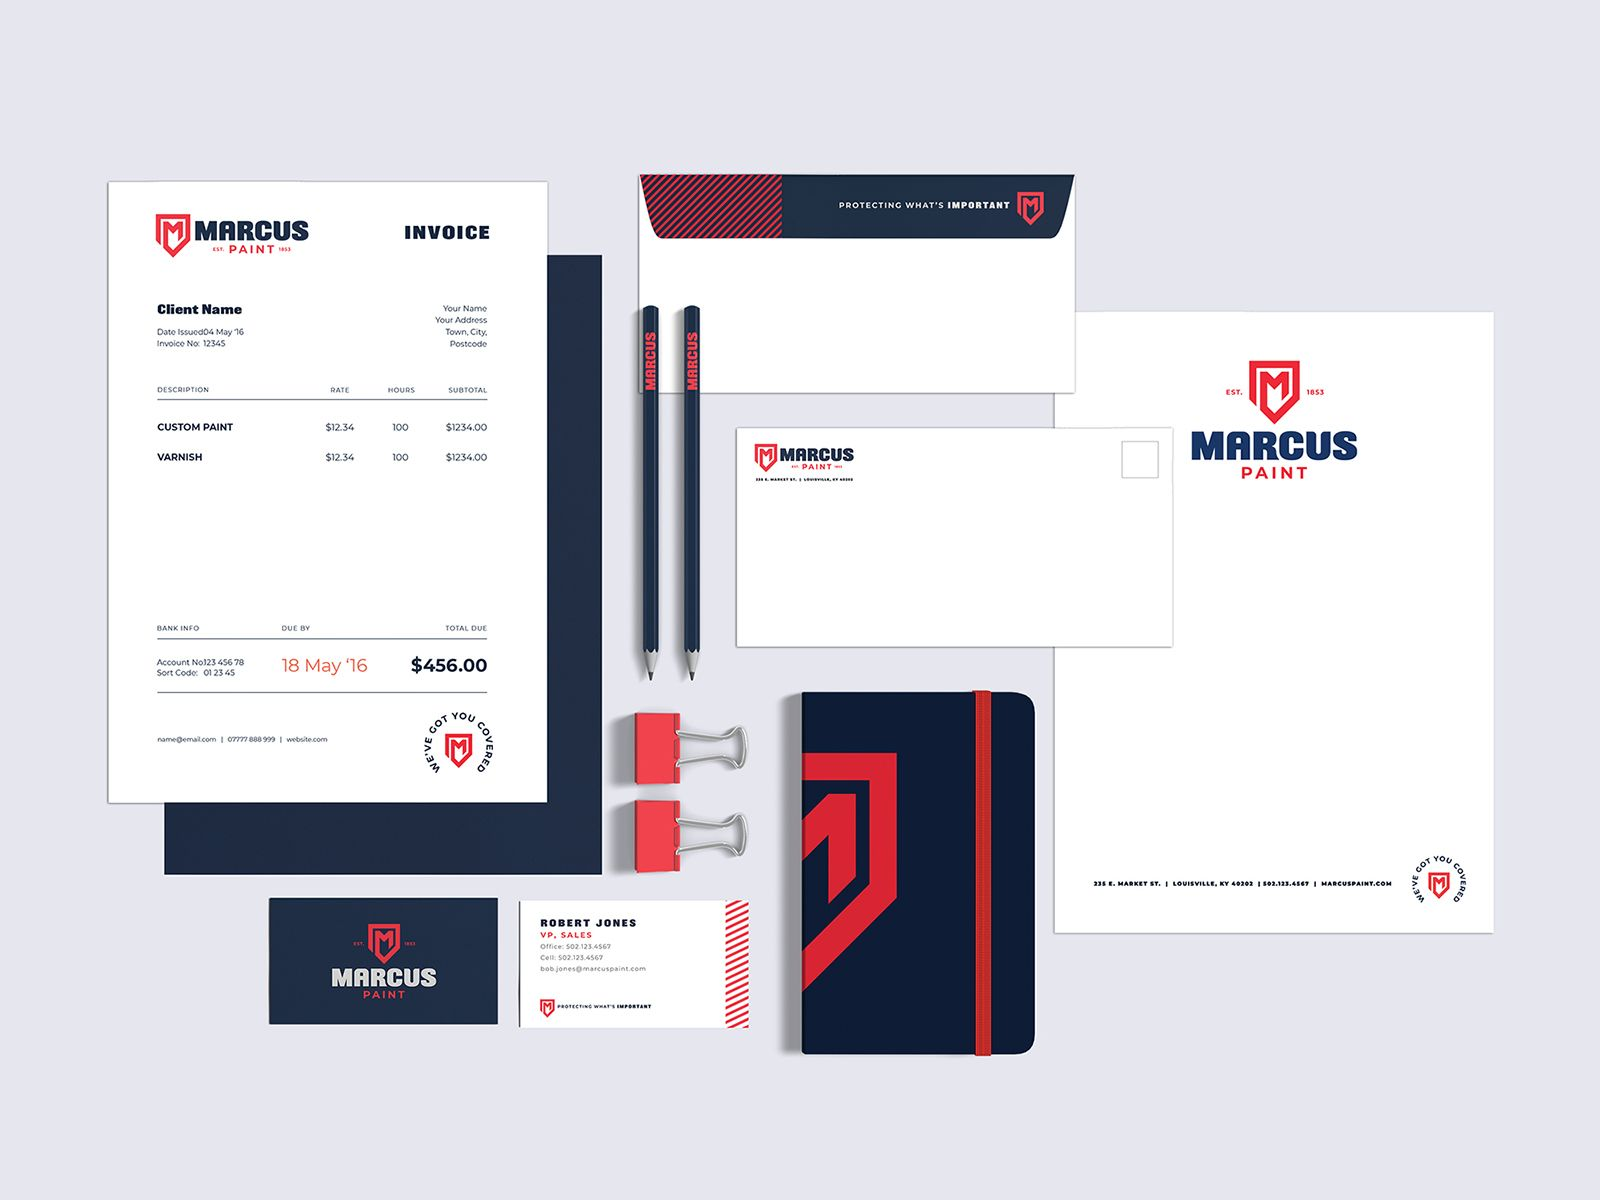 Marcus Paint Collateral